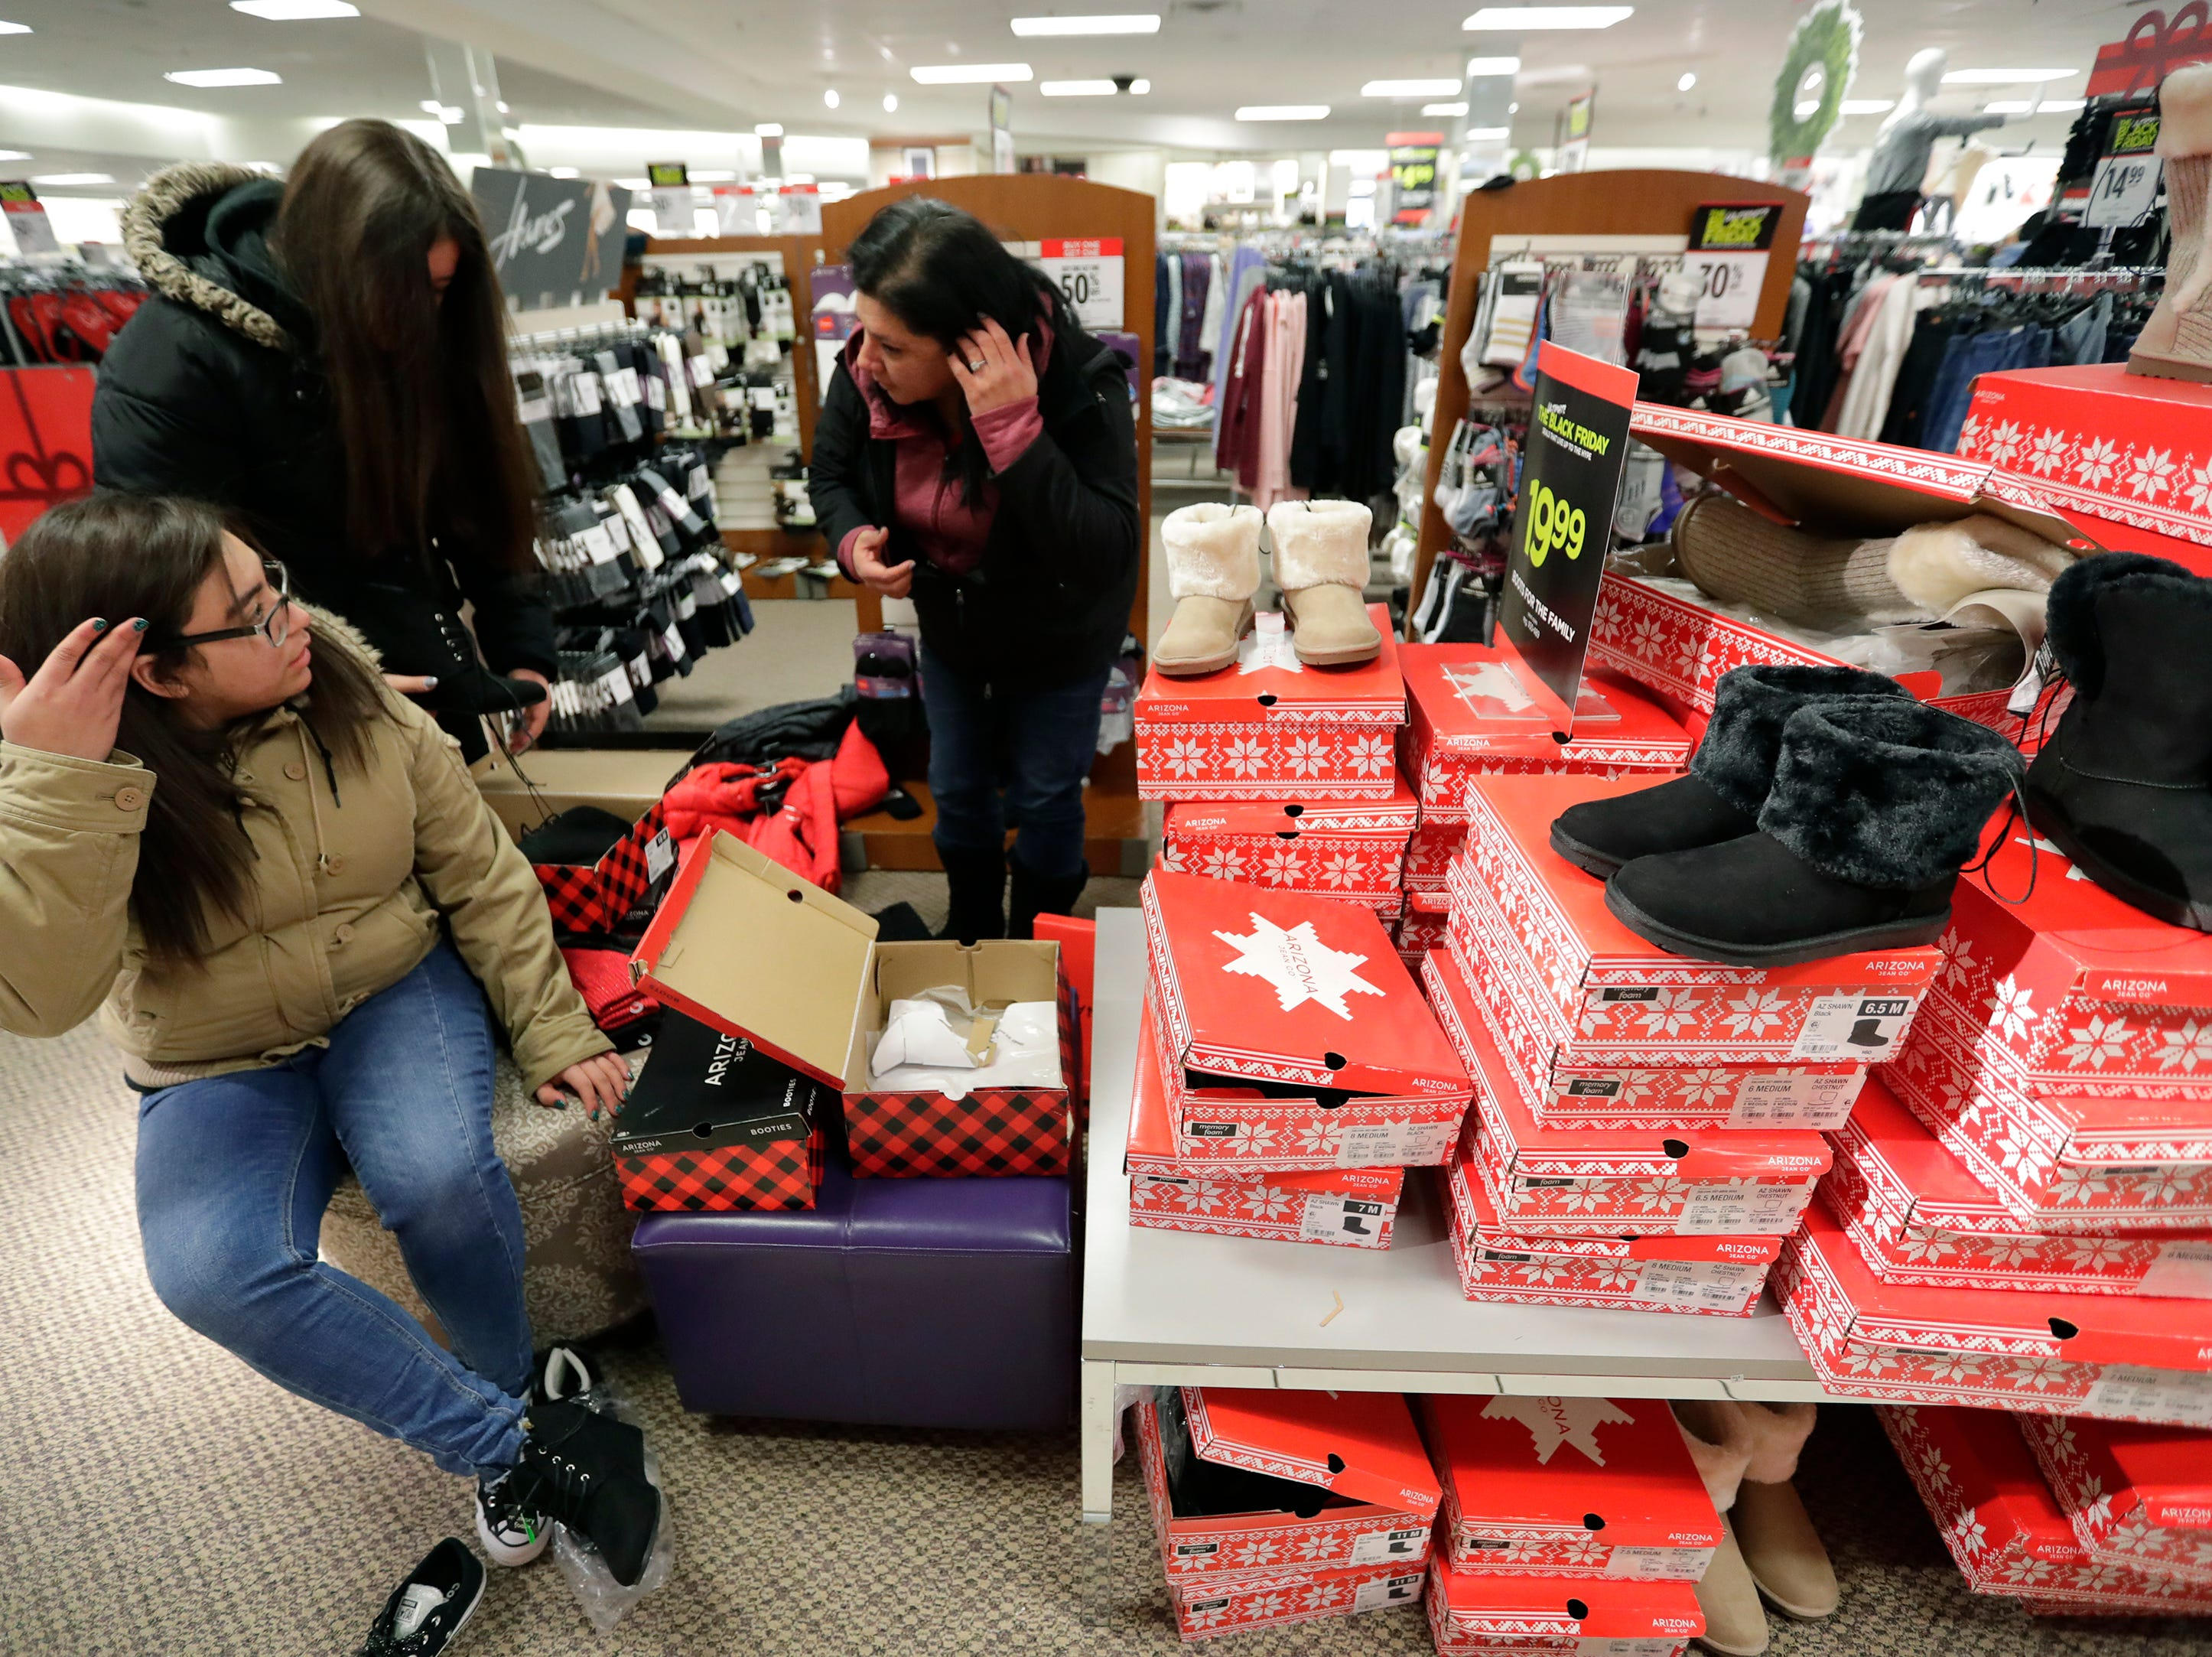 Samantha Polanco, left, 16, Jessica Quintanilla, 14, and their mother Kristy Polanco shop for boots while looking for Black Friday deals at JCPenney Thursday, November 22, 2018, in Grand Chute, Wis. 